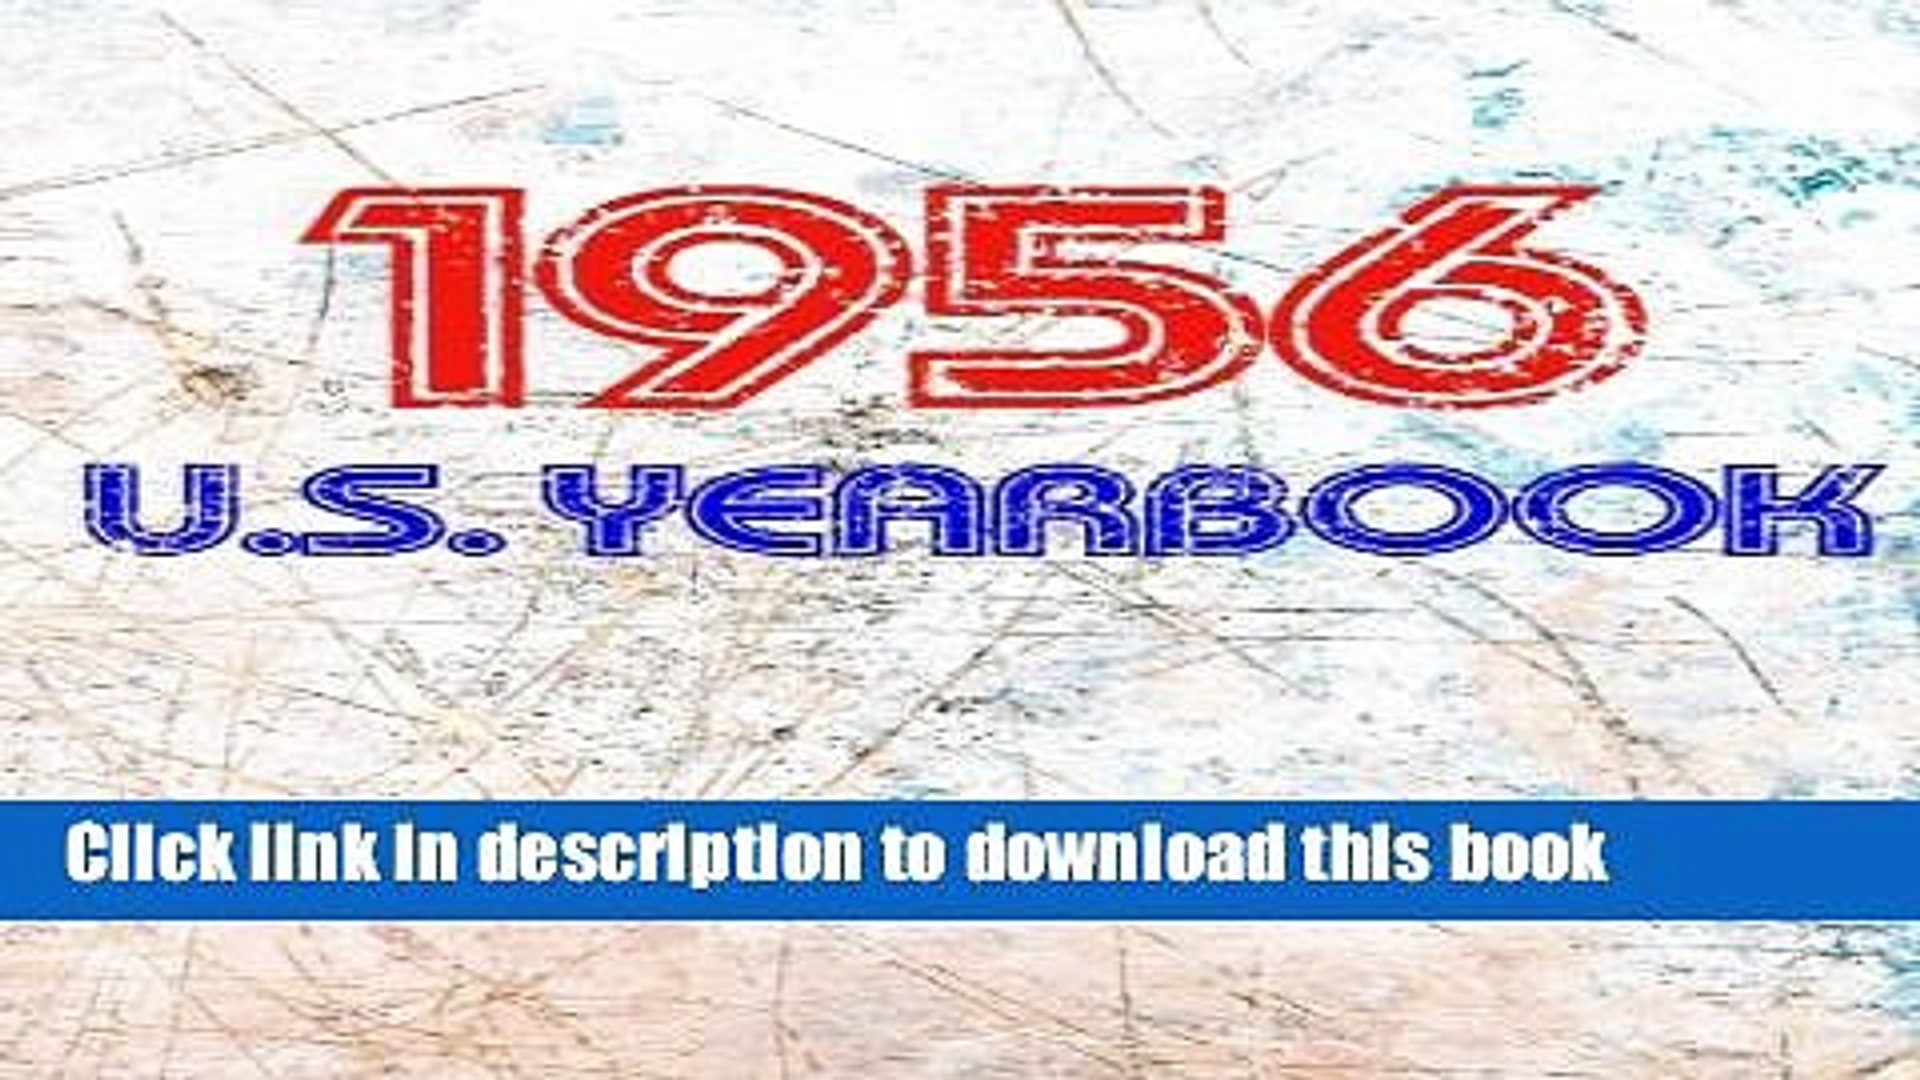 Ebook The 1956 U.S. Yearbook: Interesting facts from 1956 including News, Sport, Music, Films,